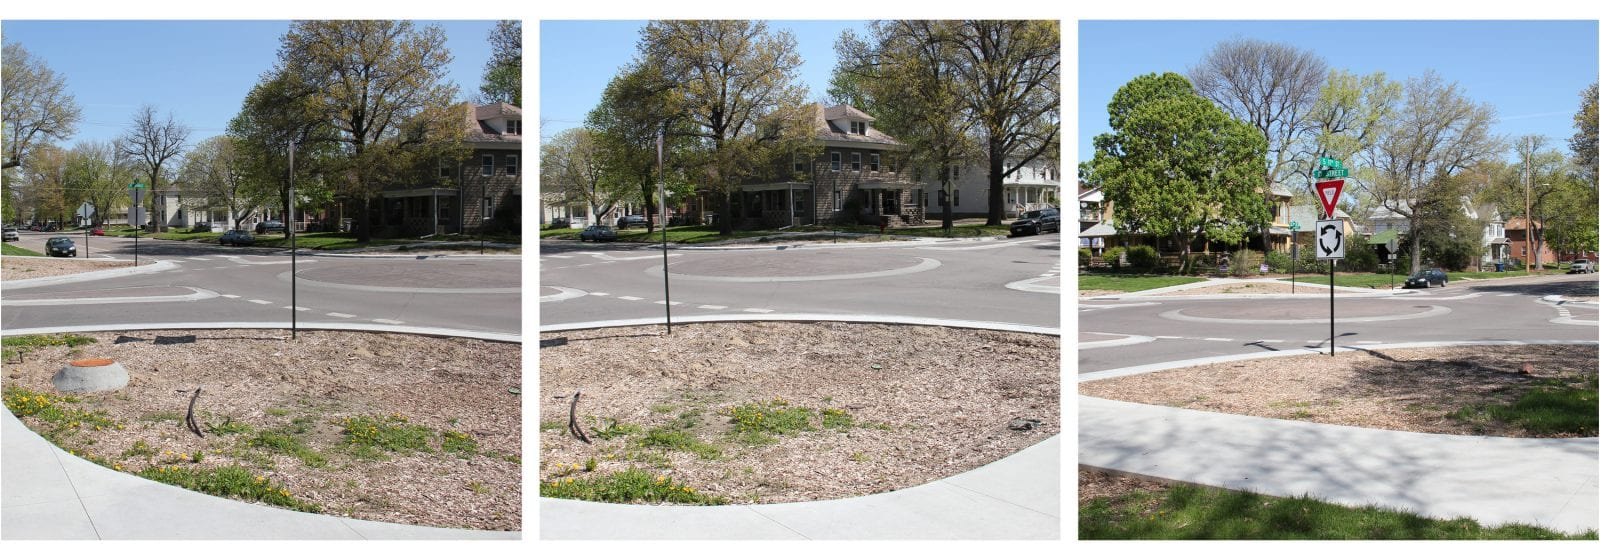 11th Street Streetscape Roundabout Lincoln Transportation Engineering